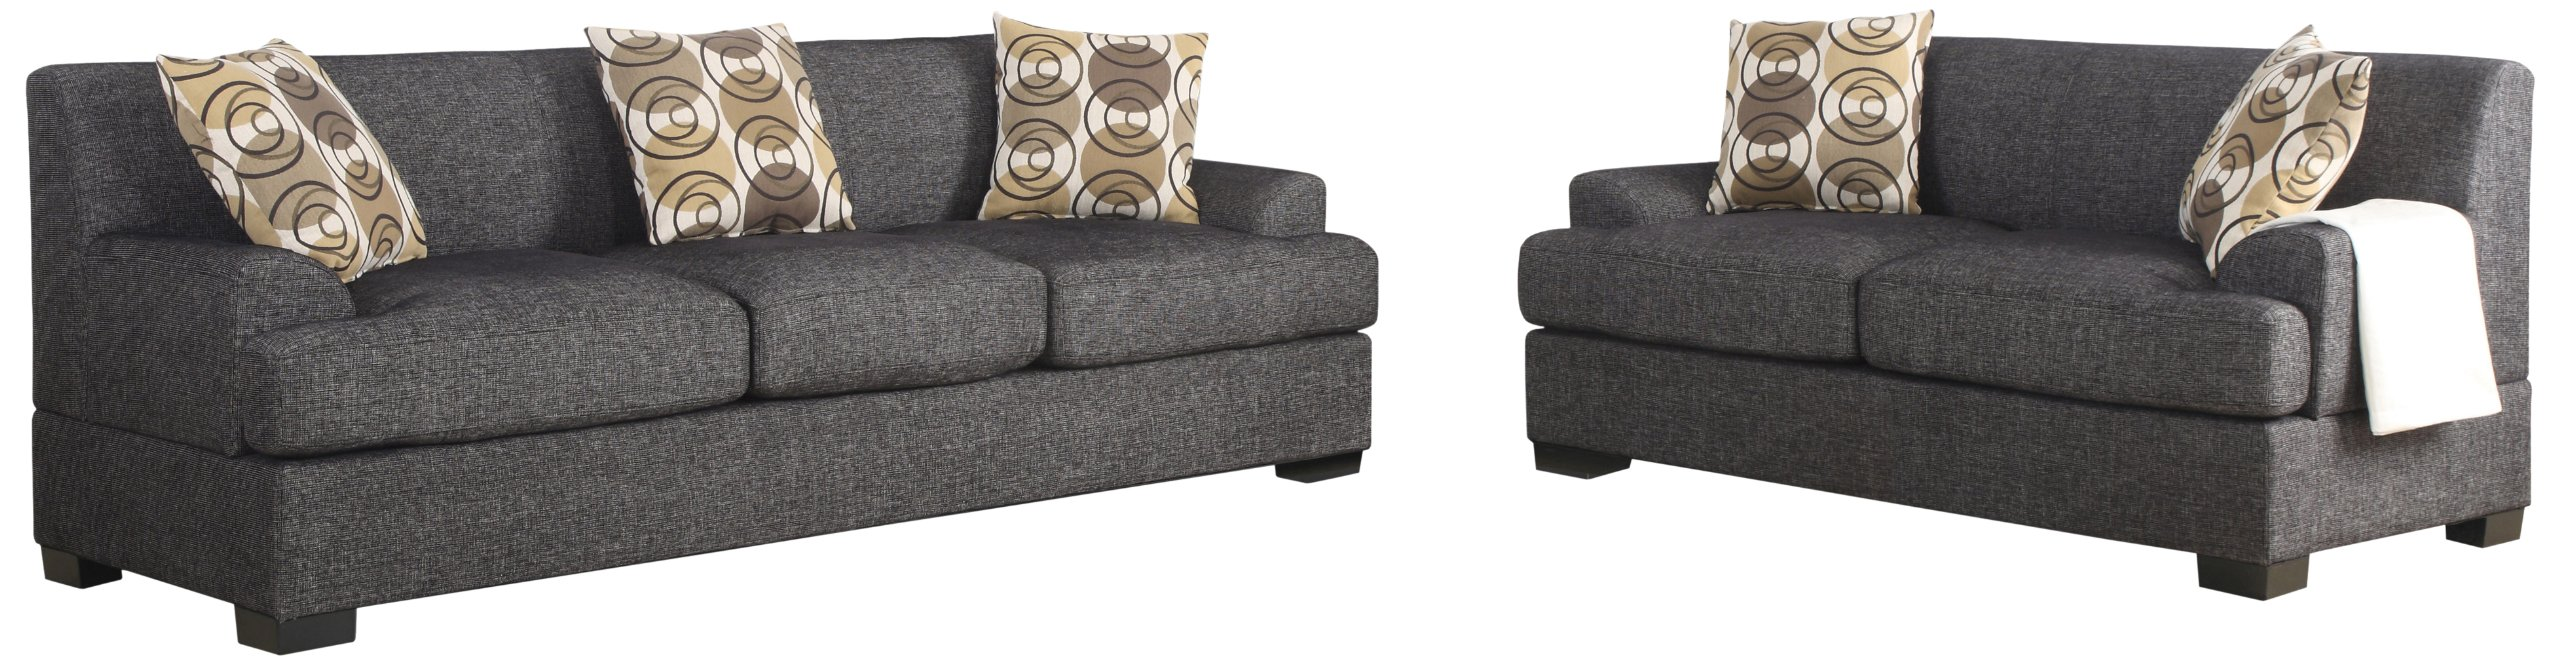 Poundex Montereal 2-Piece Sofa and Loveseat Collection Set with Faux Linen fabric, Ash Black Color